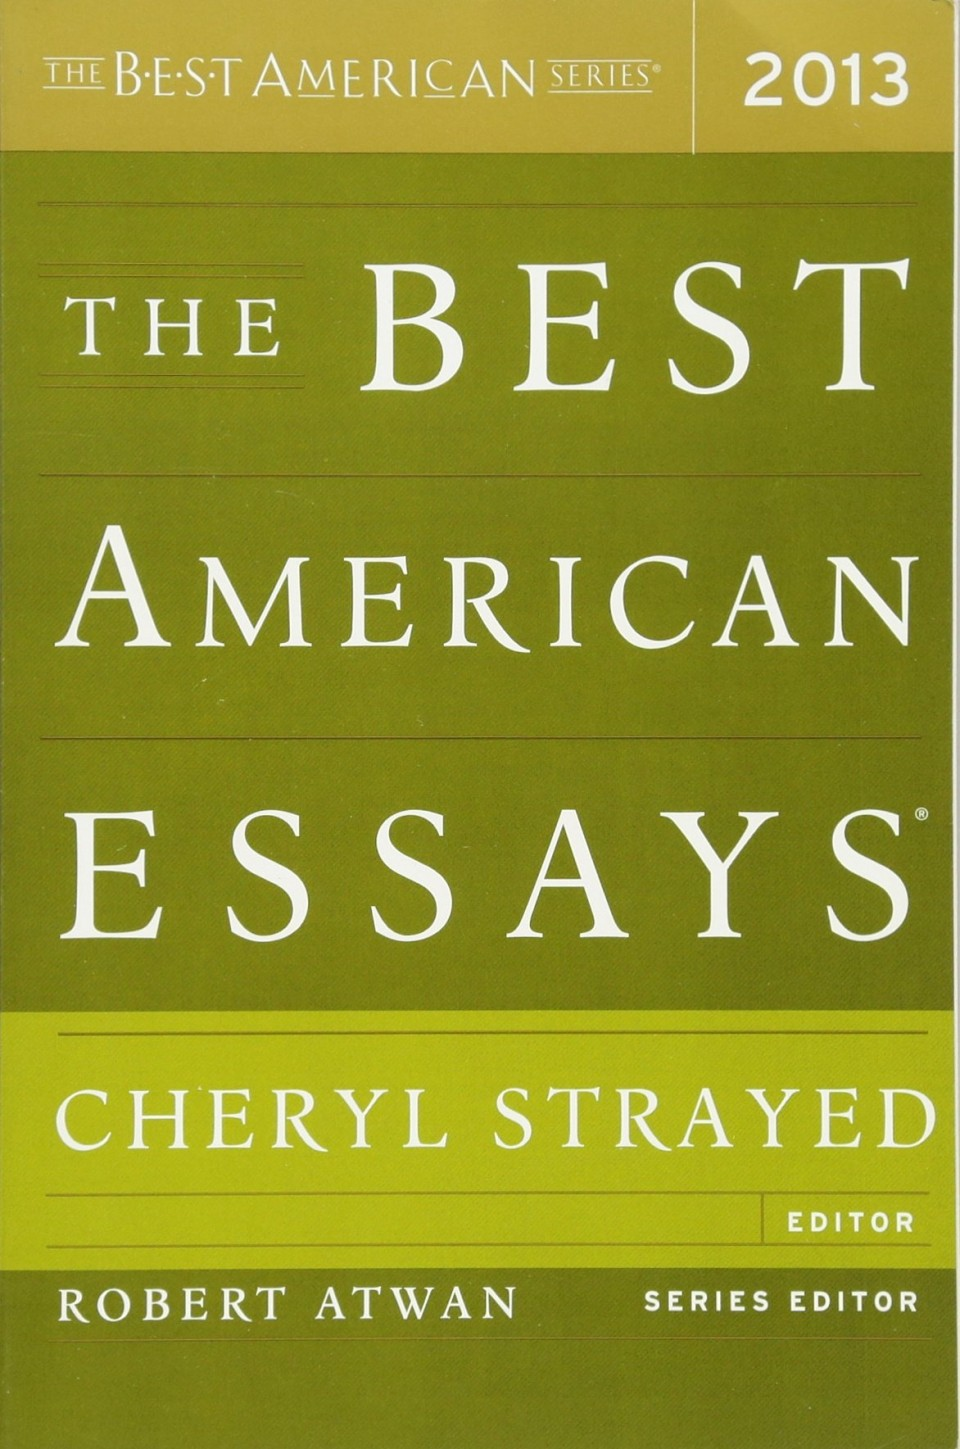 003 Essay Example The Best American Essays Phenomenal 2016 Pdf Download Audiobook Sparknotes 960